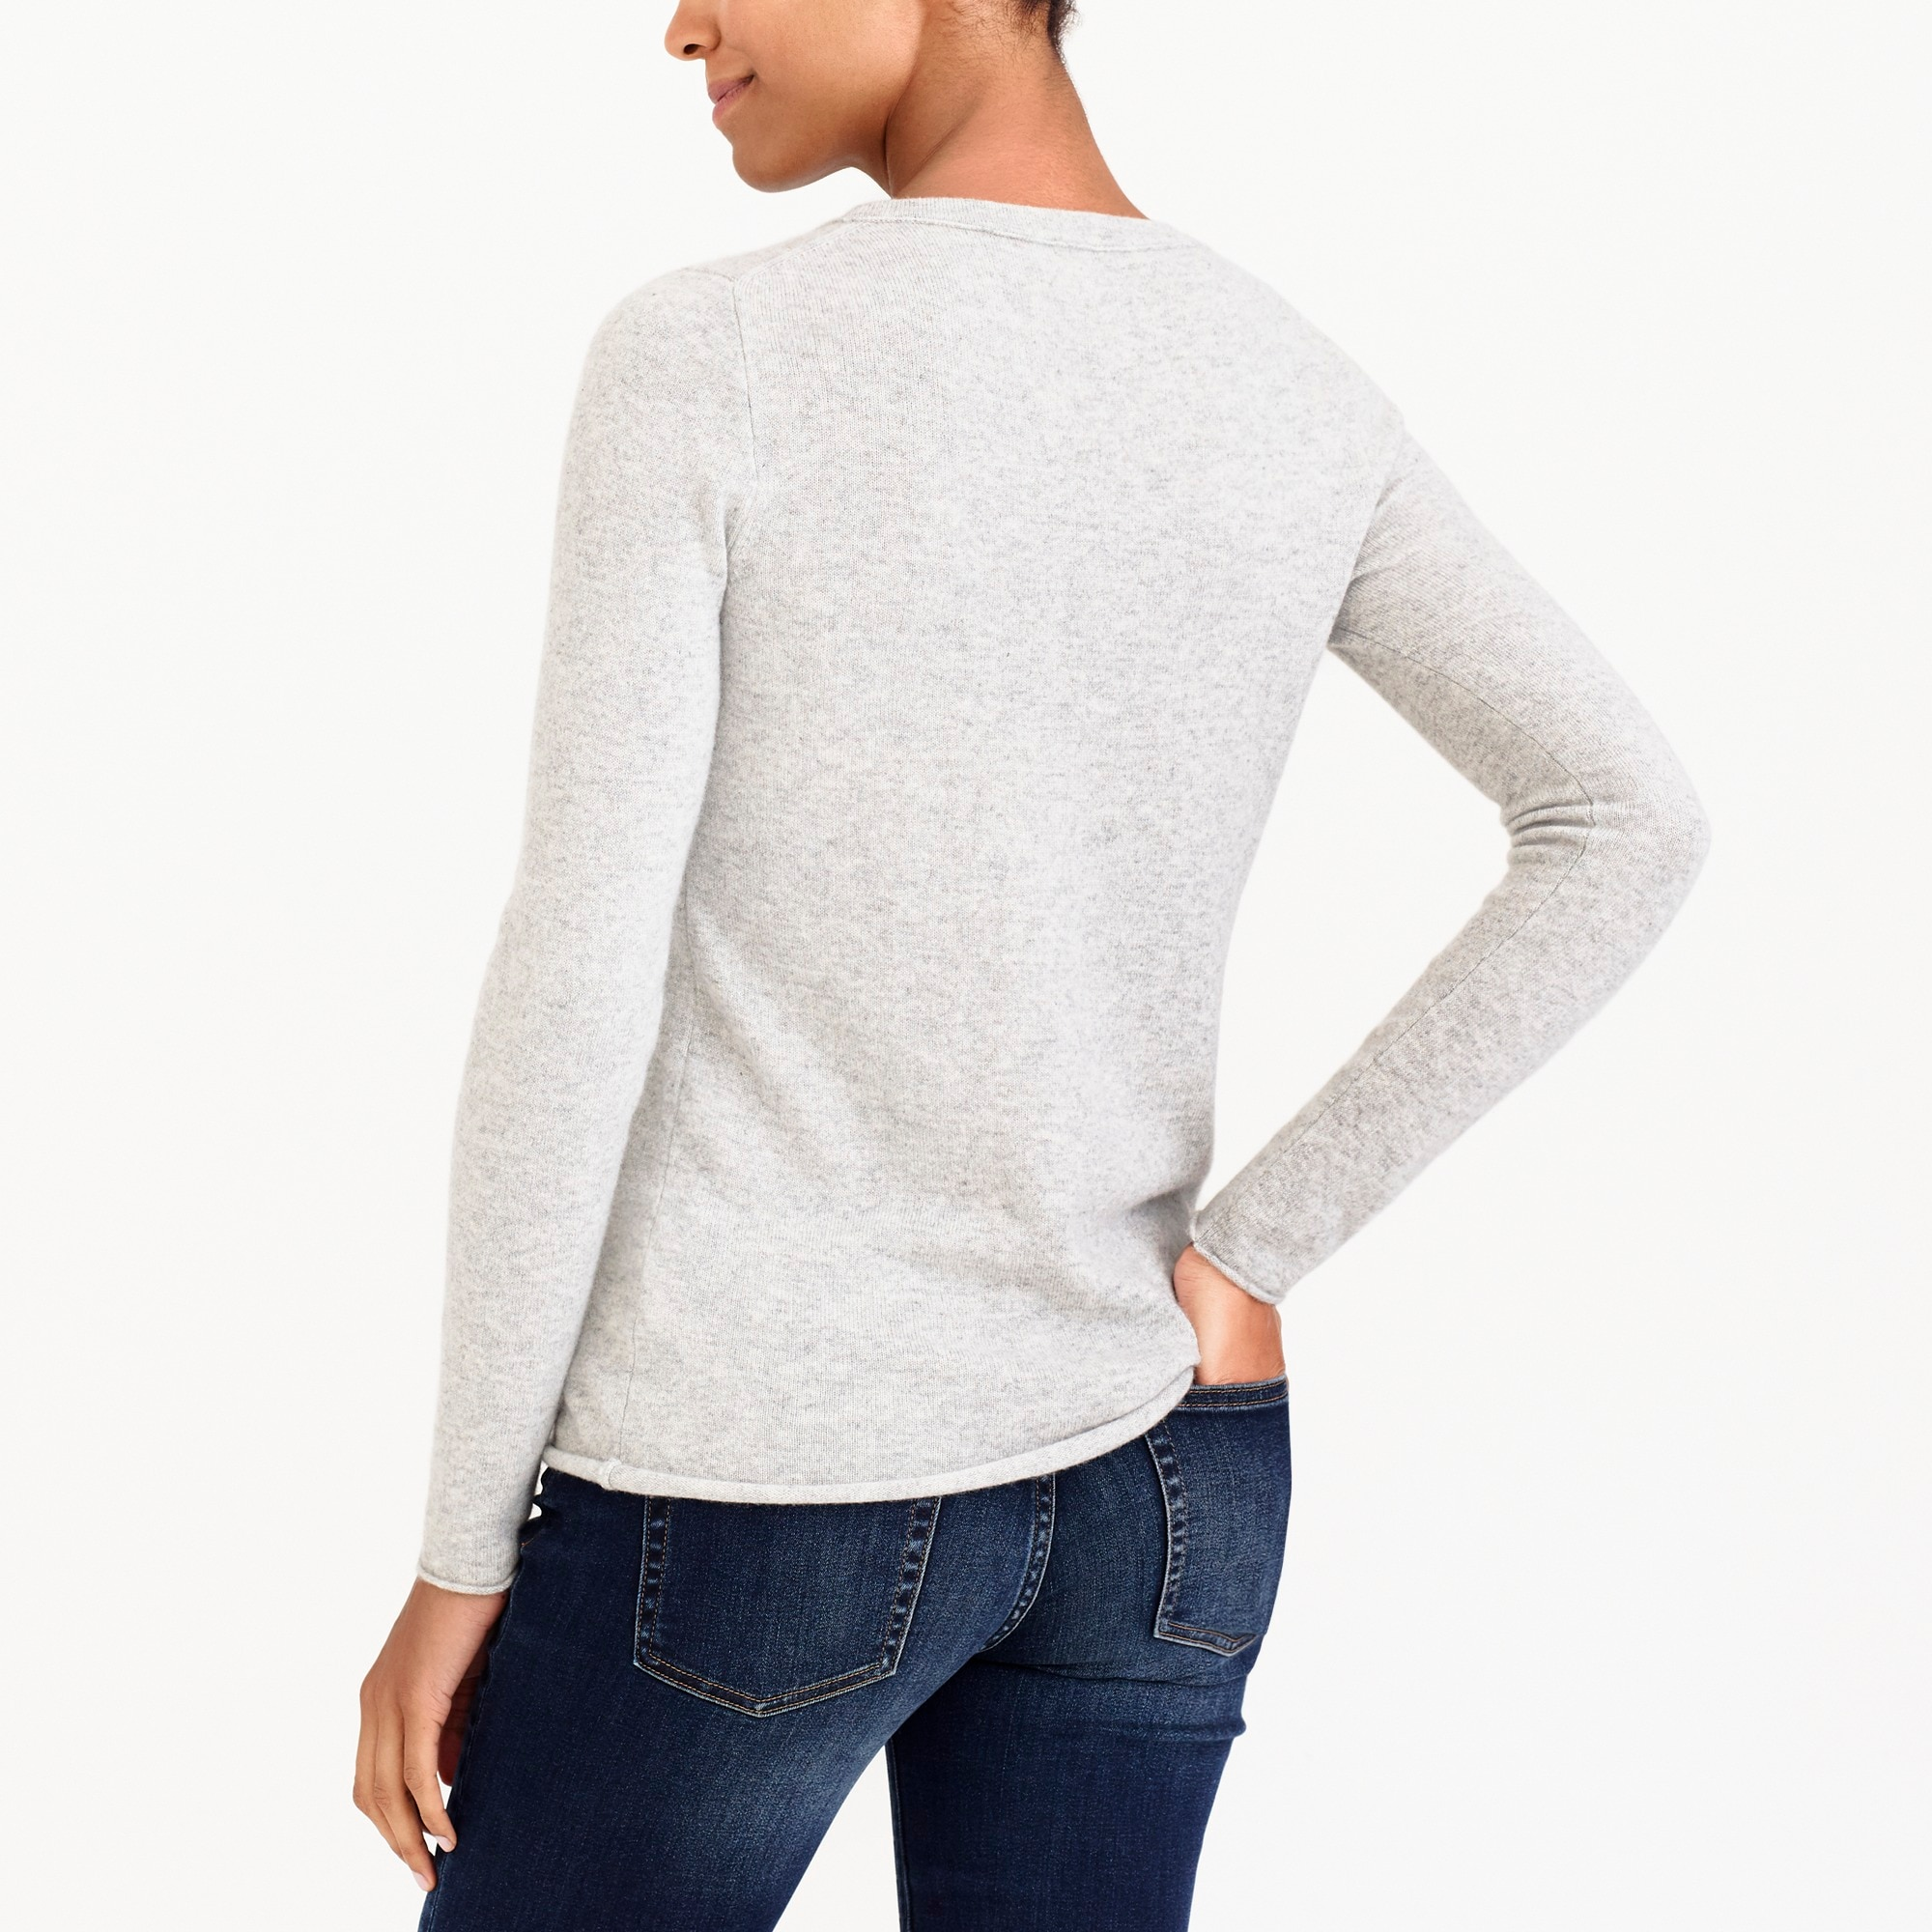 Image 3 for Cashmere sweater